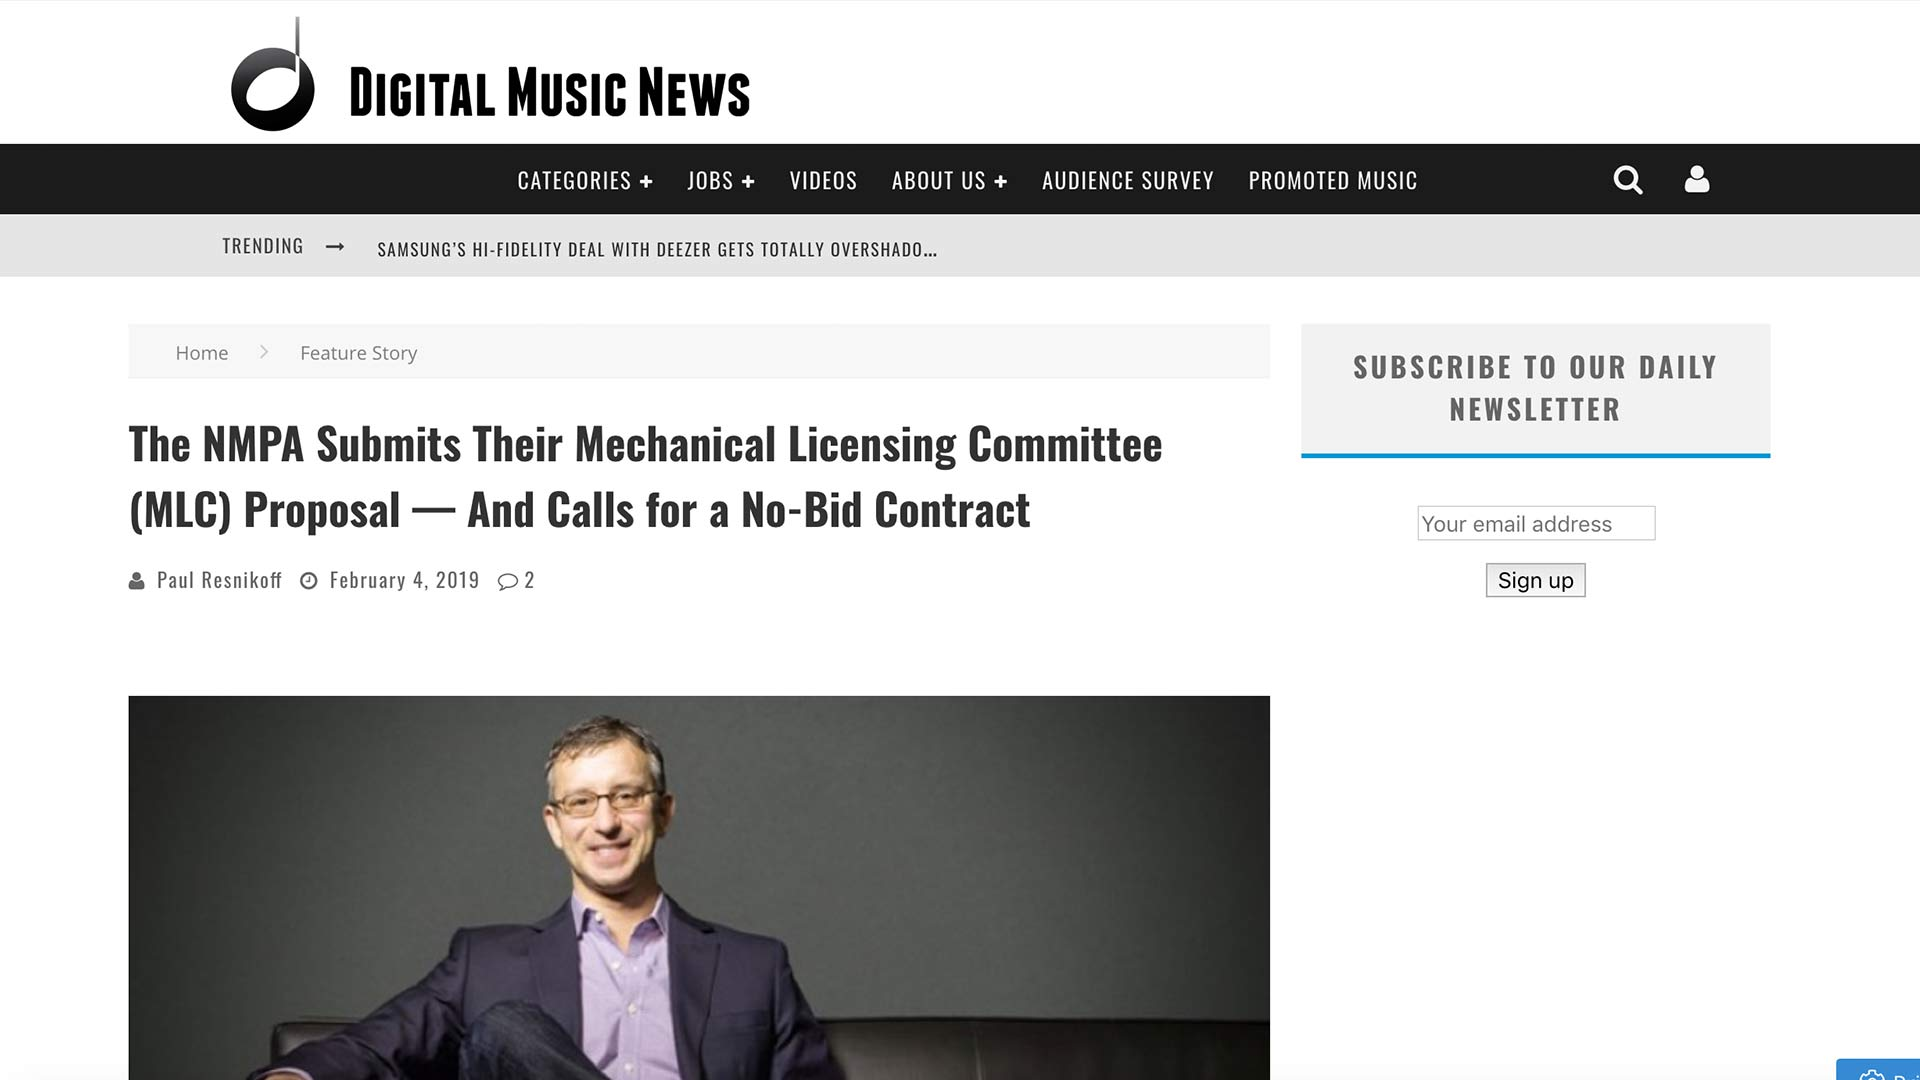 Fairness Rocks News The NMPA Submits Their Mechanical Licensing Committee (MLC) Proposal — And Calls for a No-Bid Contract